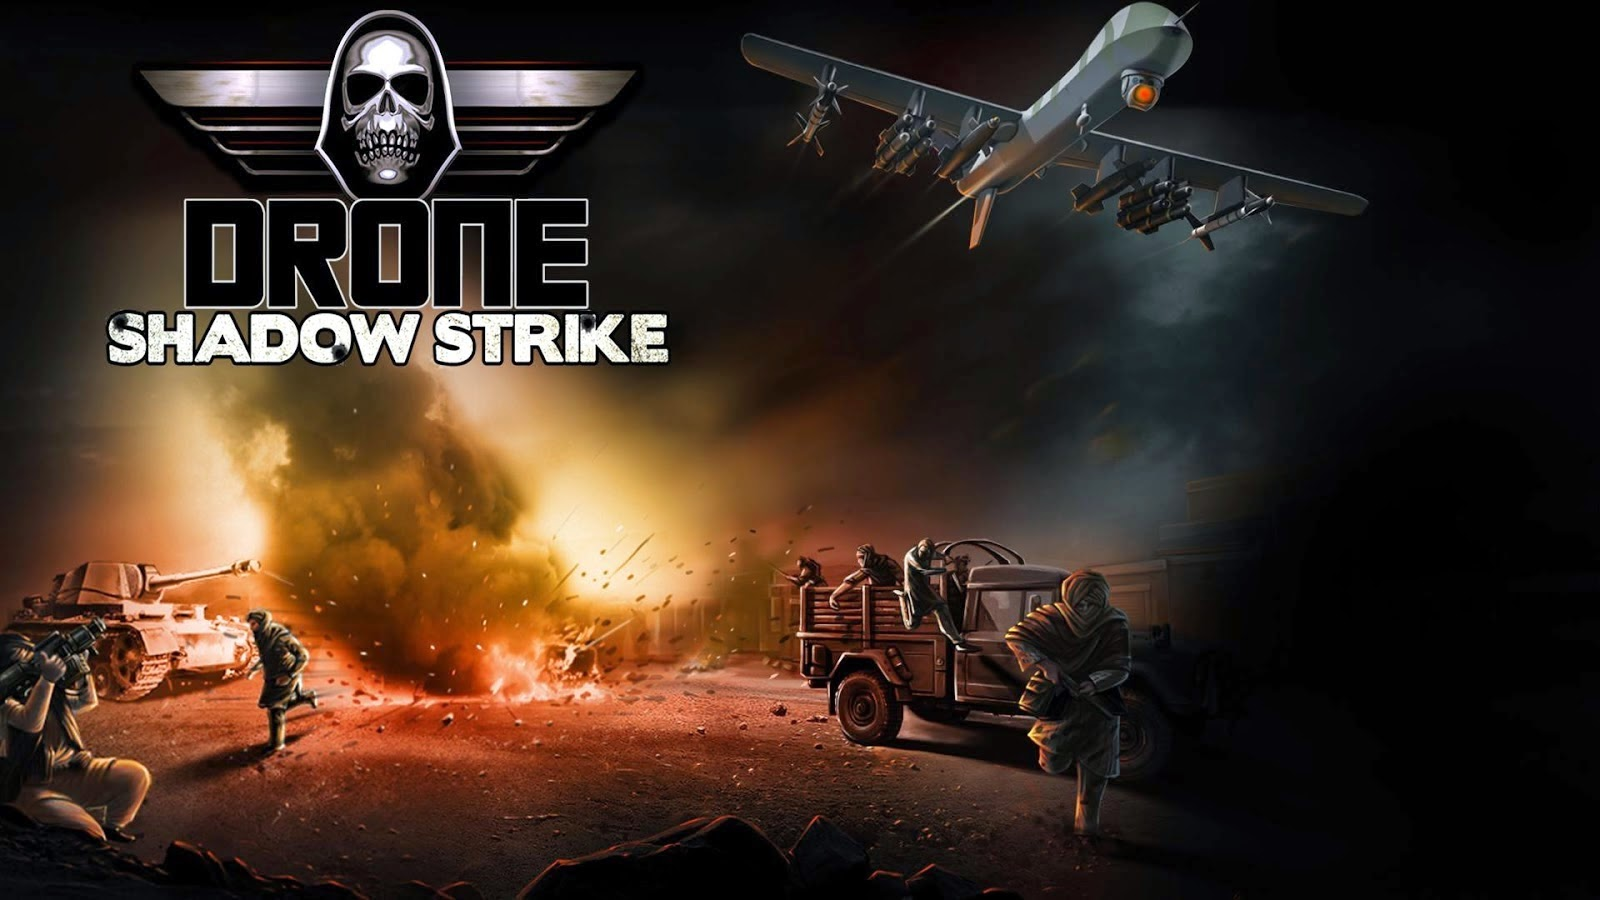 Drone Shadow Strike 1.3.05 MOD APK [Unlimited Coin/Cash]